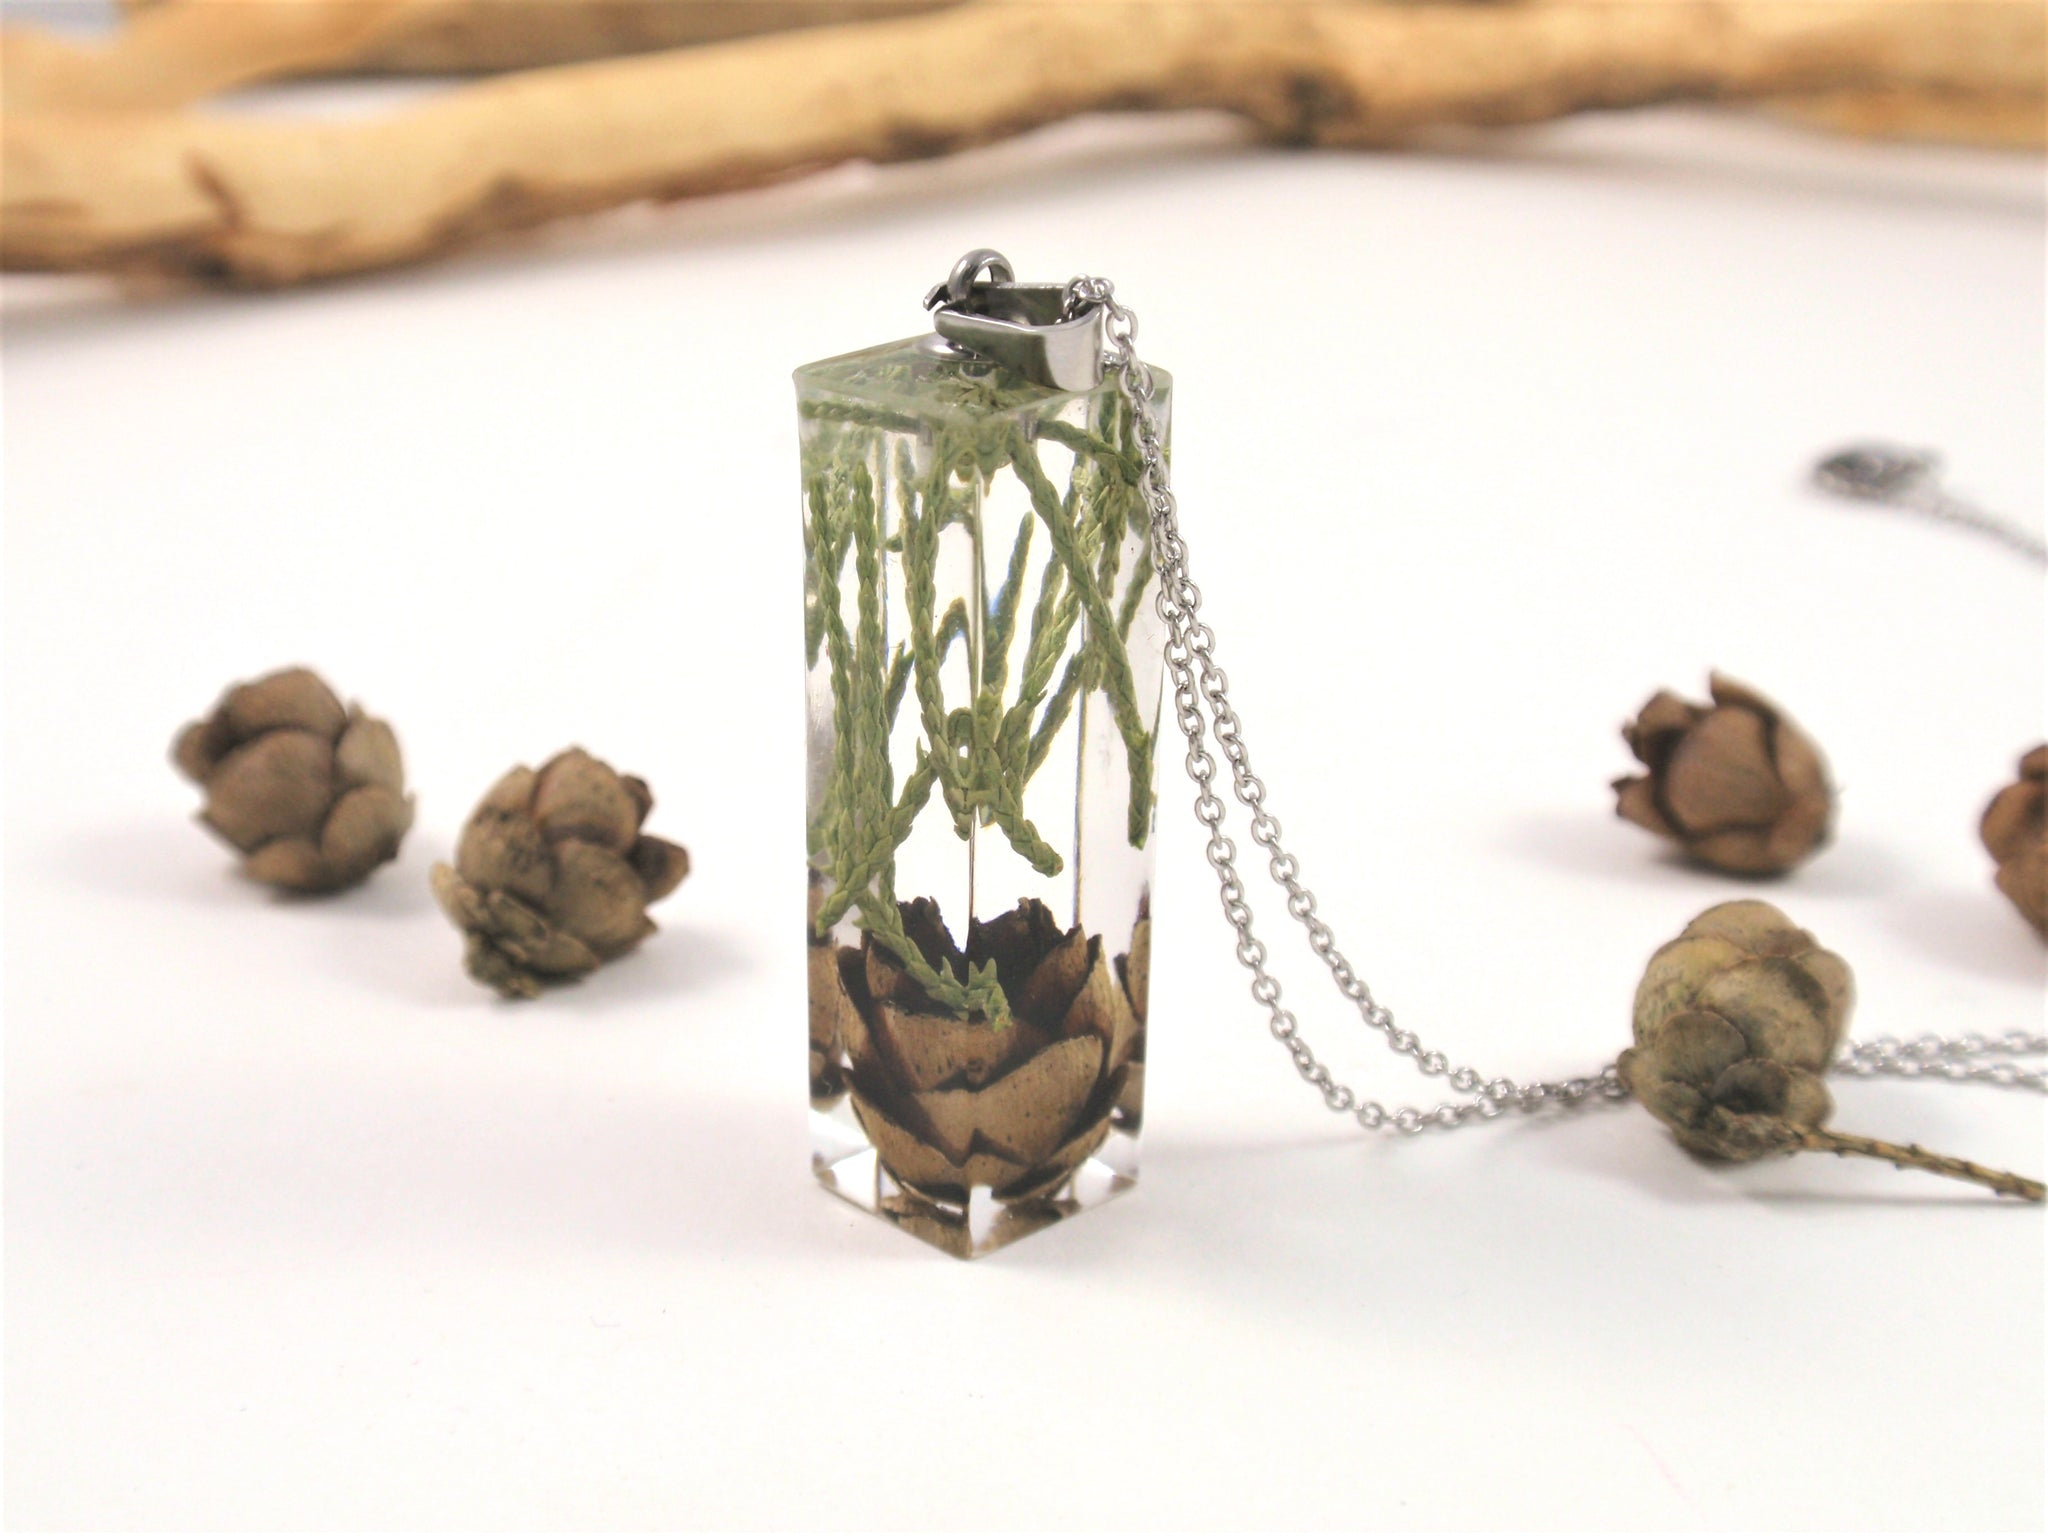 Handmade Necklace with Real Pine cone and greens, Botanical Jewelry, Terrarium Necklace